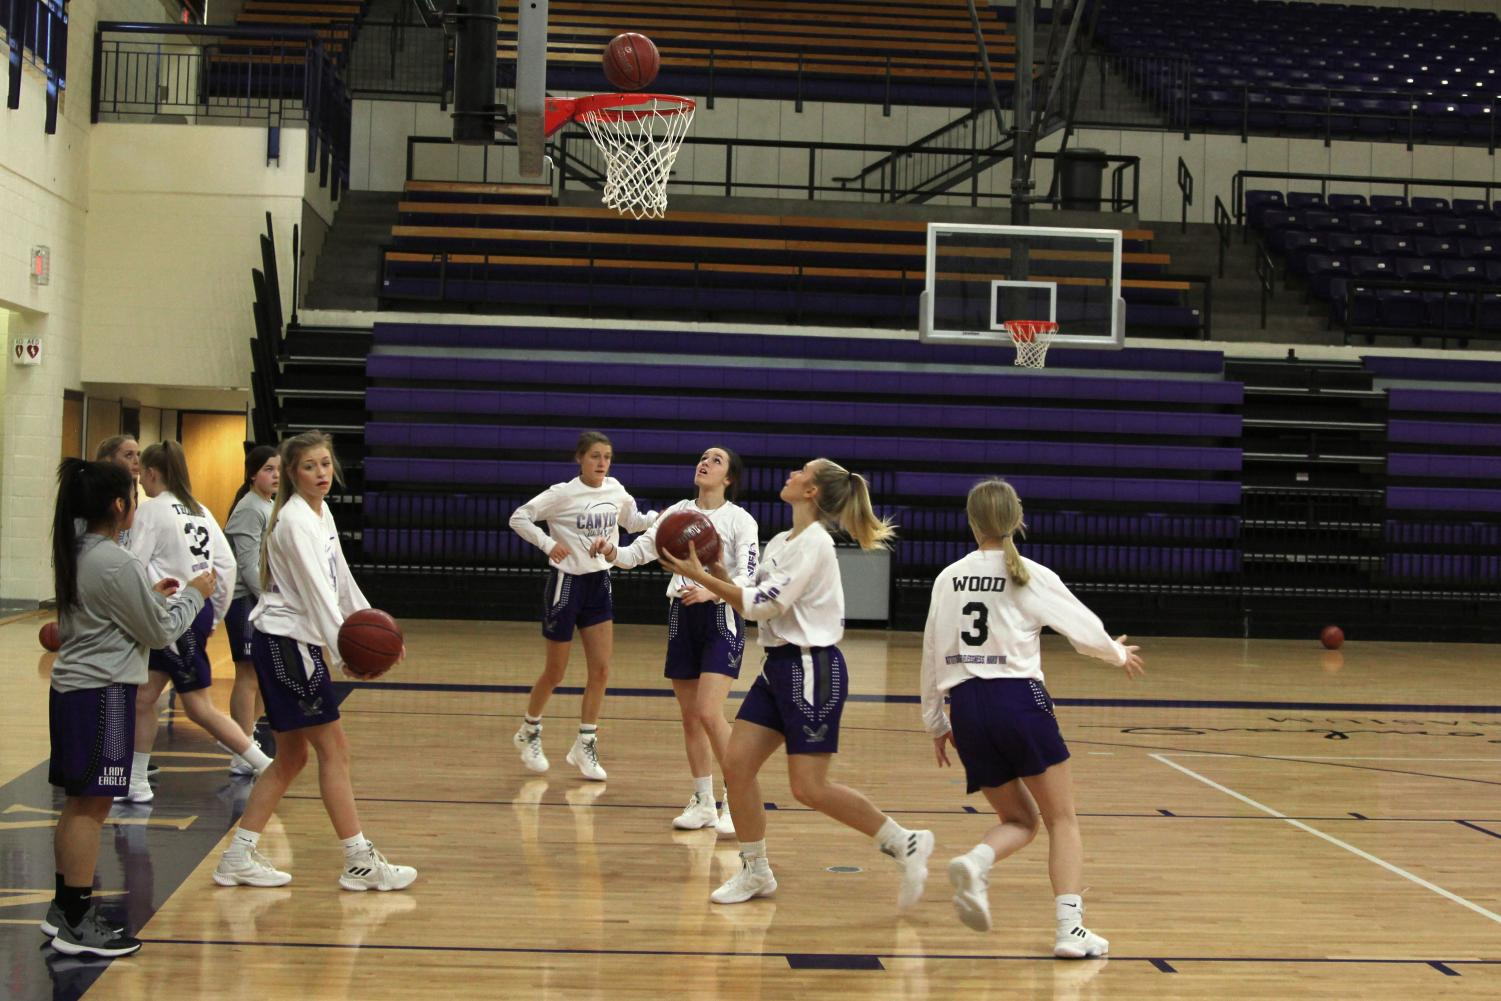 The Lady Eagles practice Tuesday morning for the game against Idalou at 6:30 p.m.